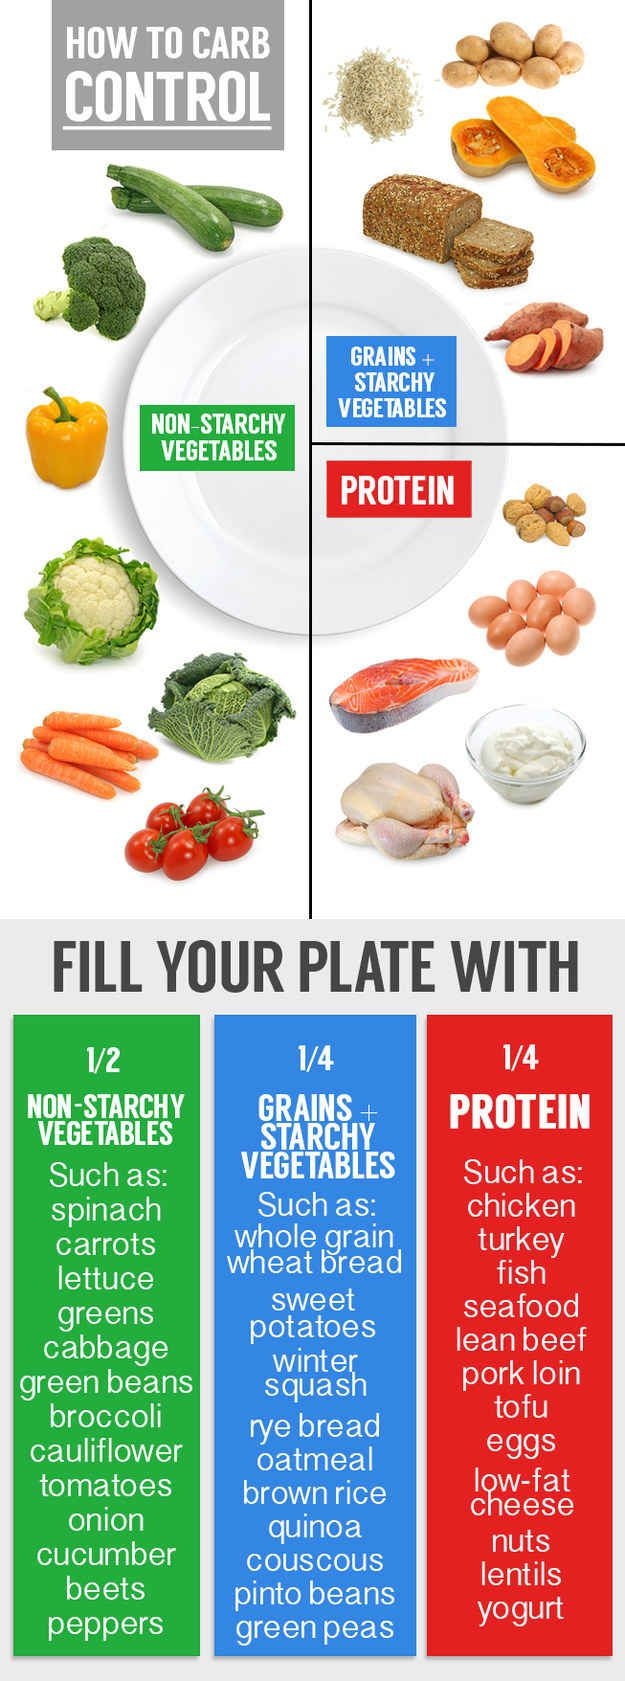 Fill ½ your plate with vegetables (think dark greens), ¼ protein, and ¼ starch. | 31 Healthy Ways People With Diabetes Can Enjoy Carbs